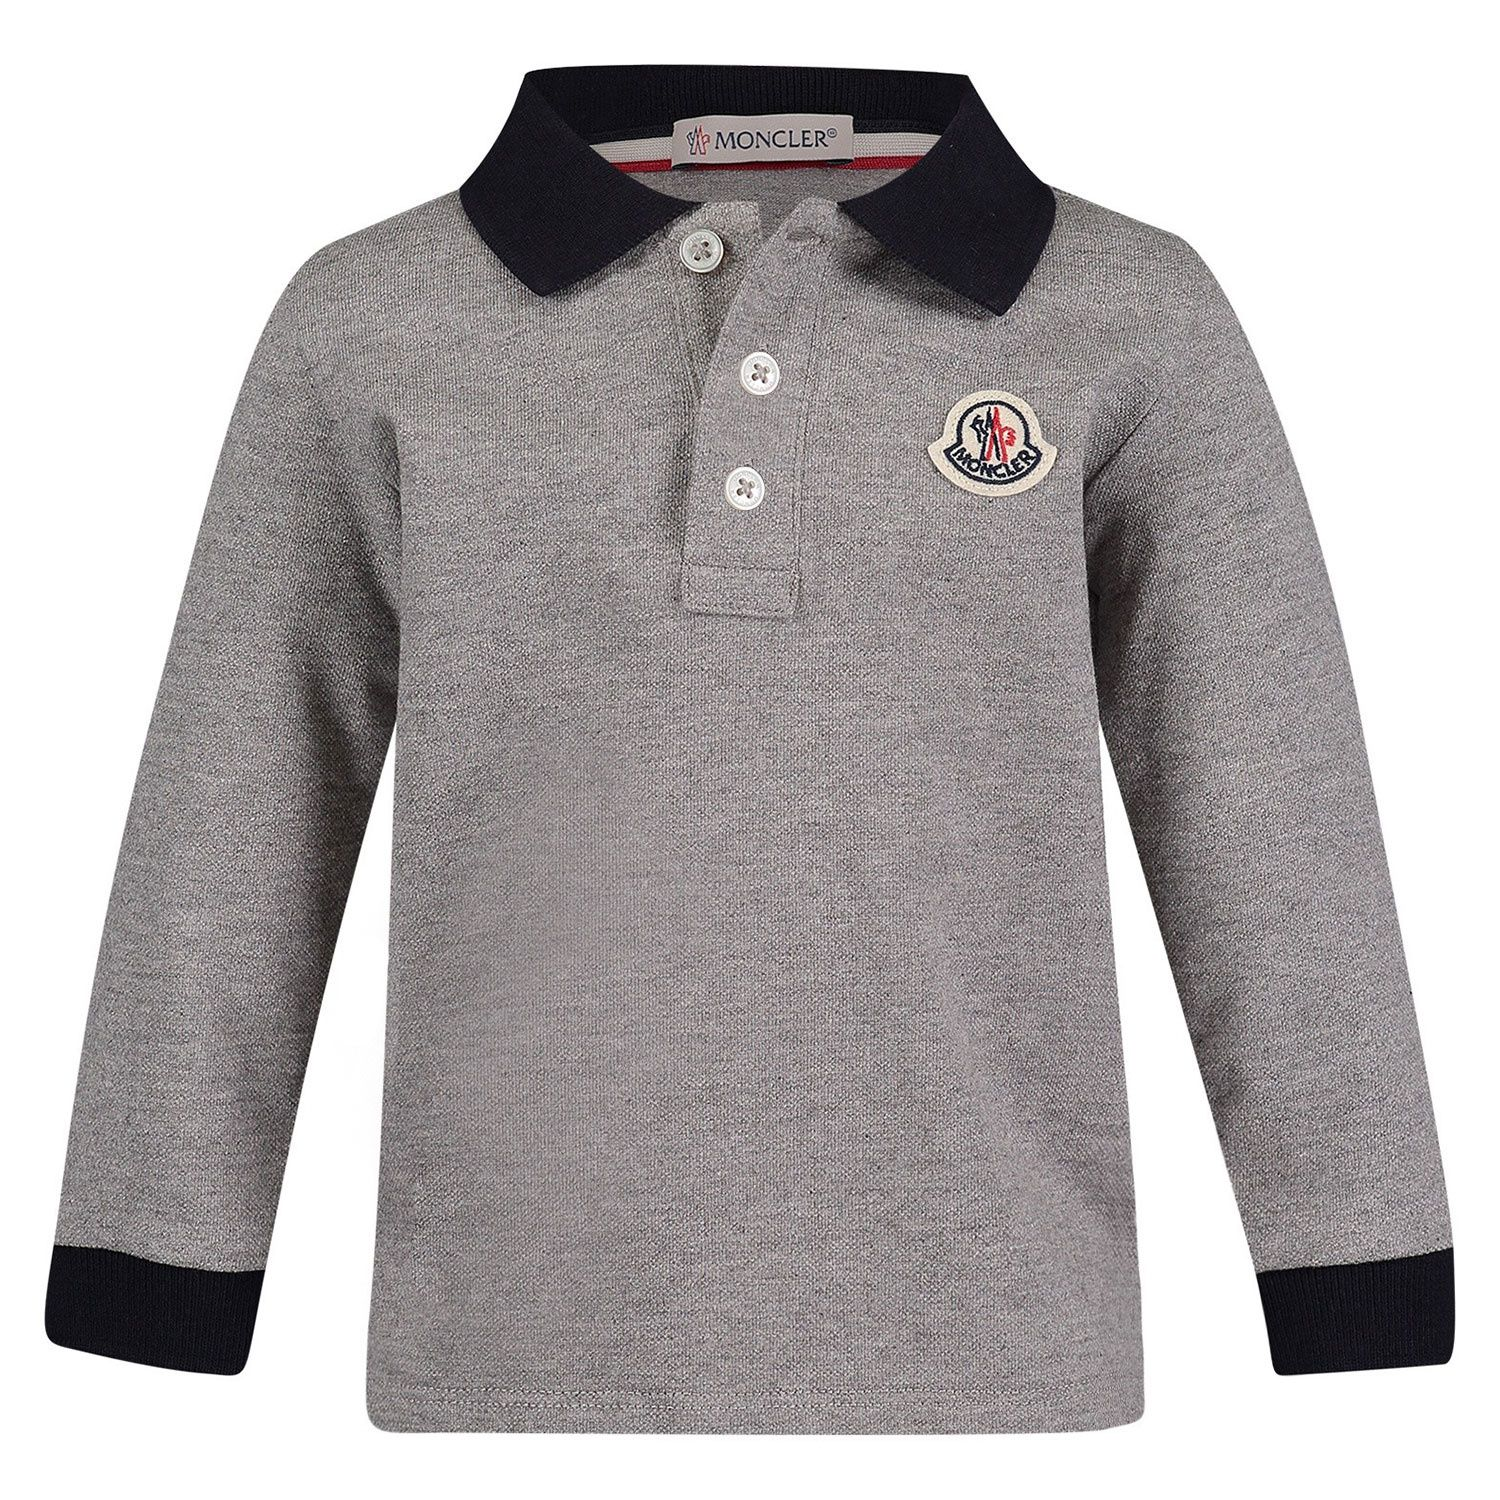 Picture of Moncler 8B70520 baby poloshirt grey